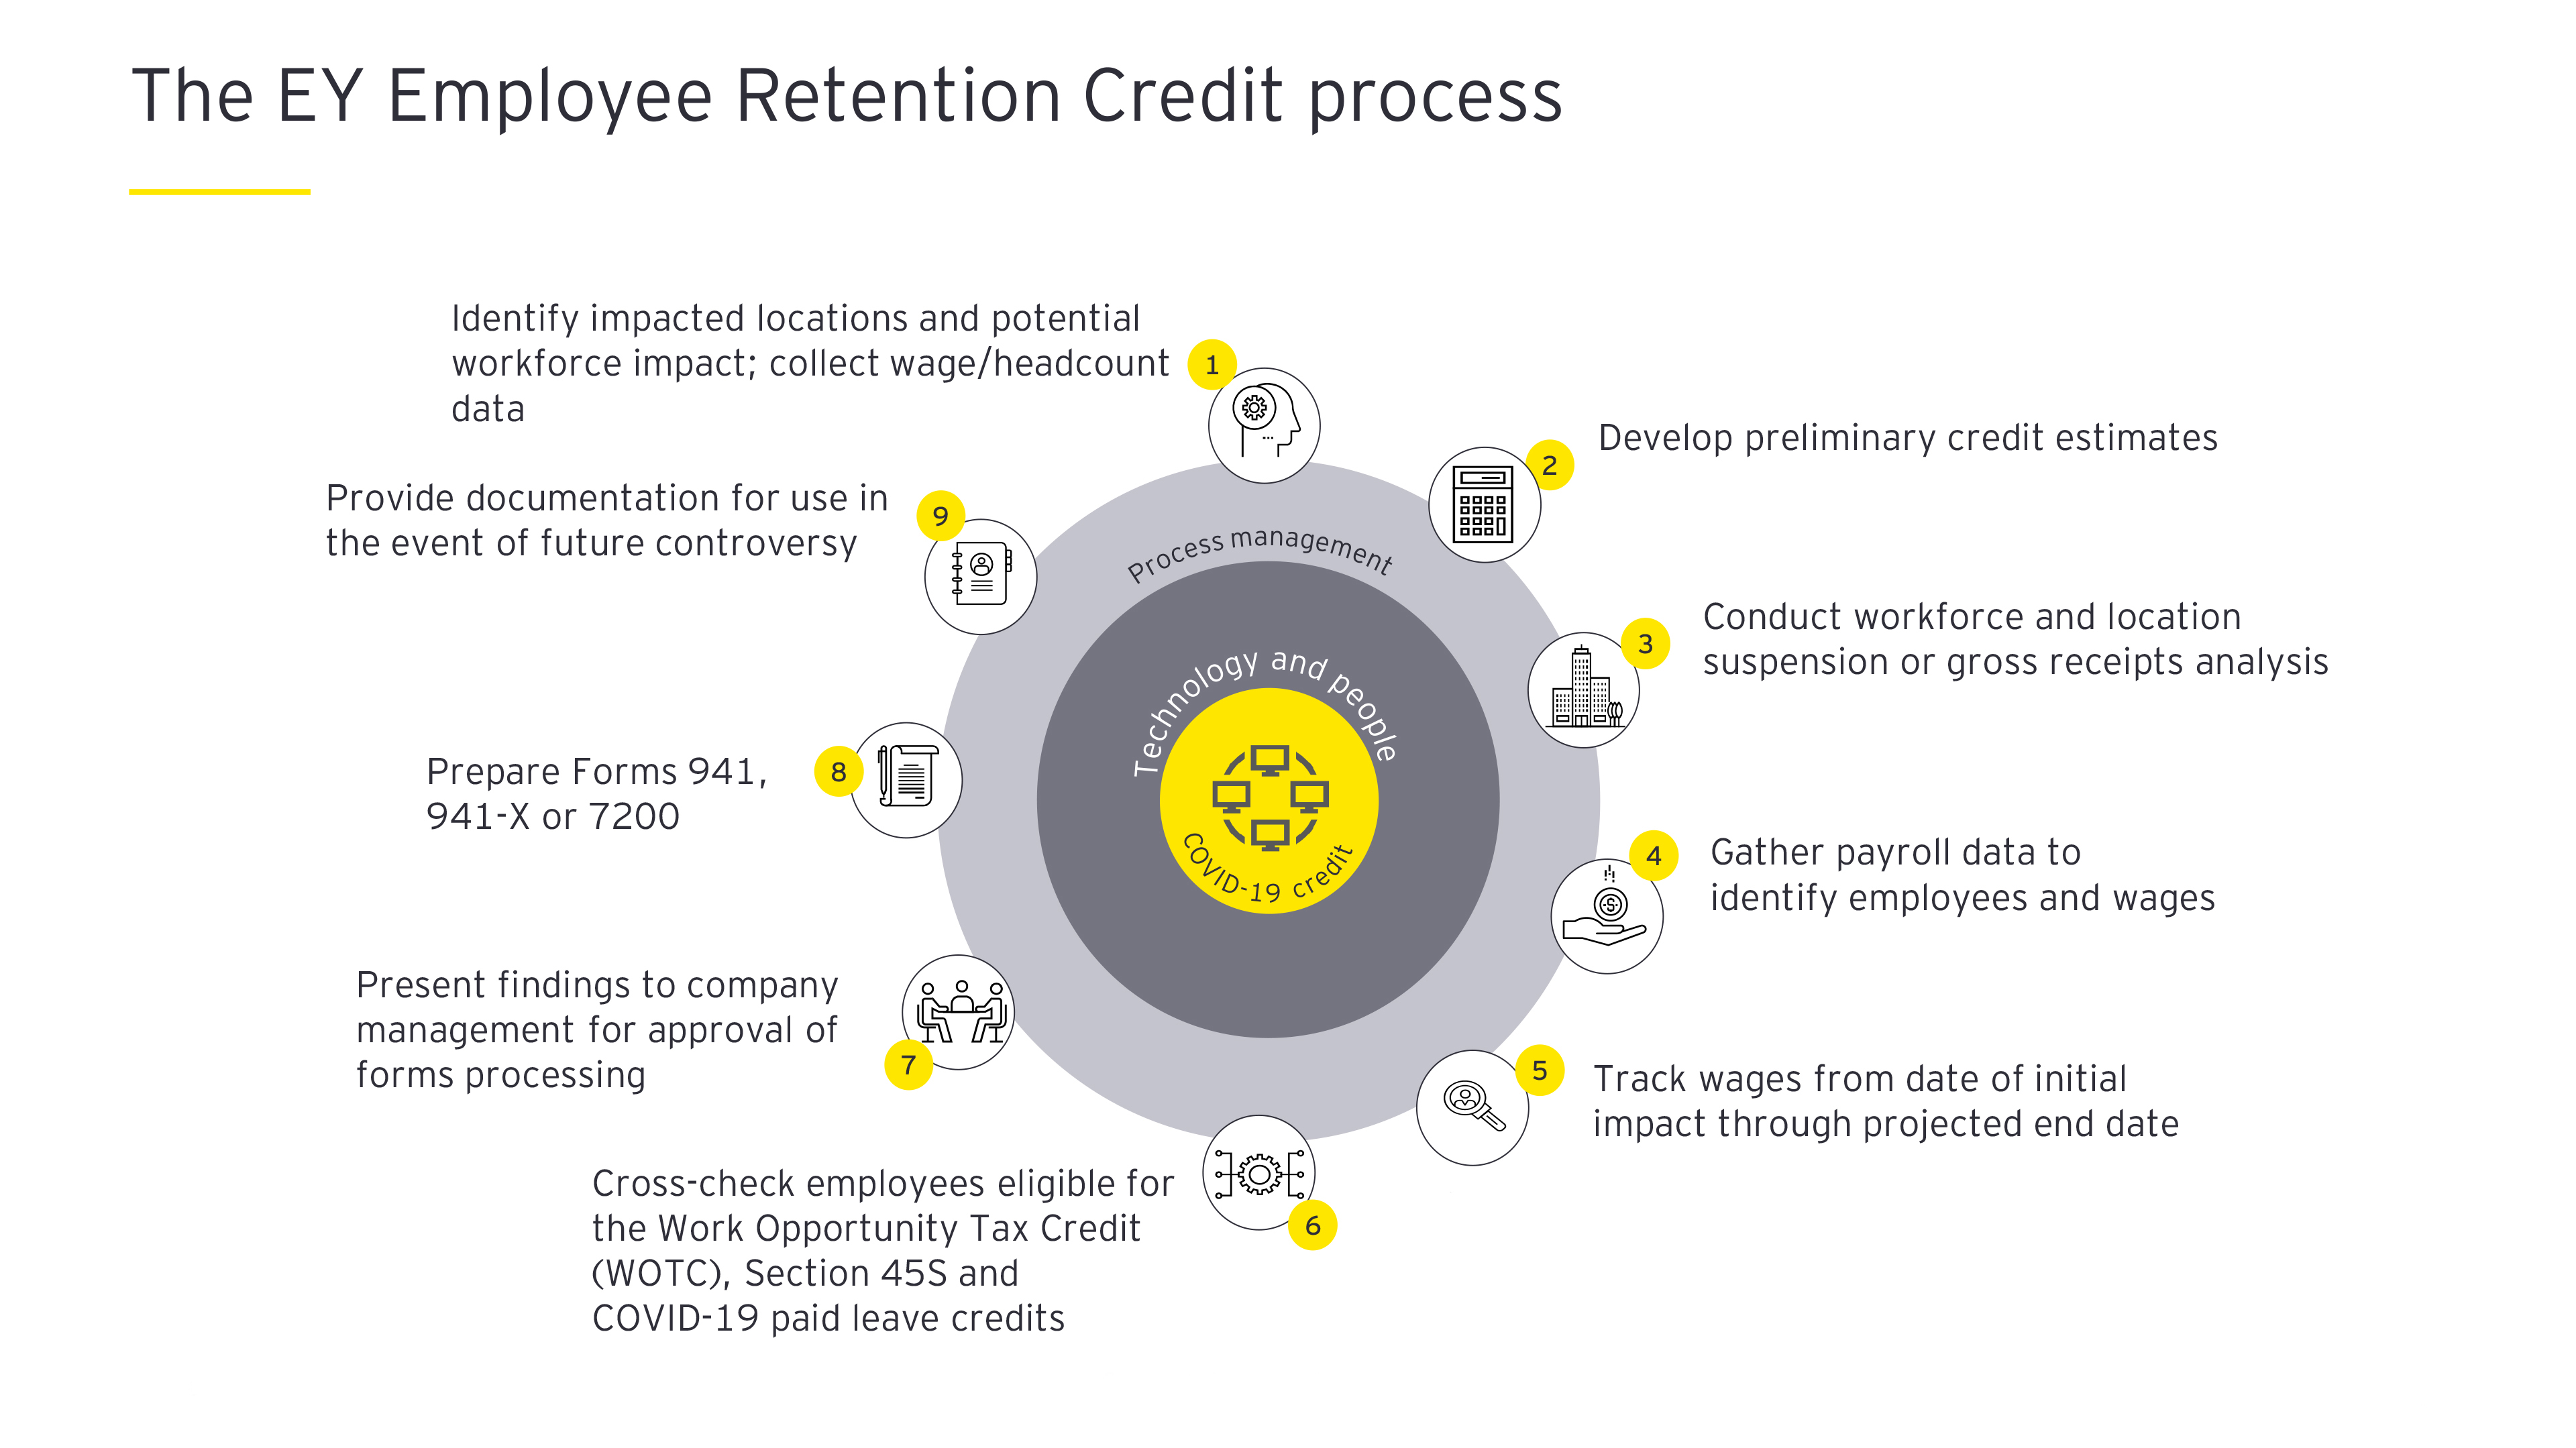 The EY Employee Retention Credit process